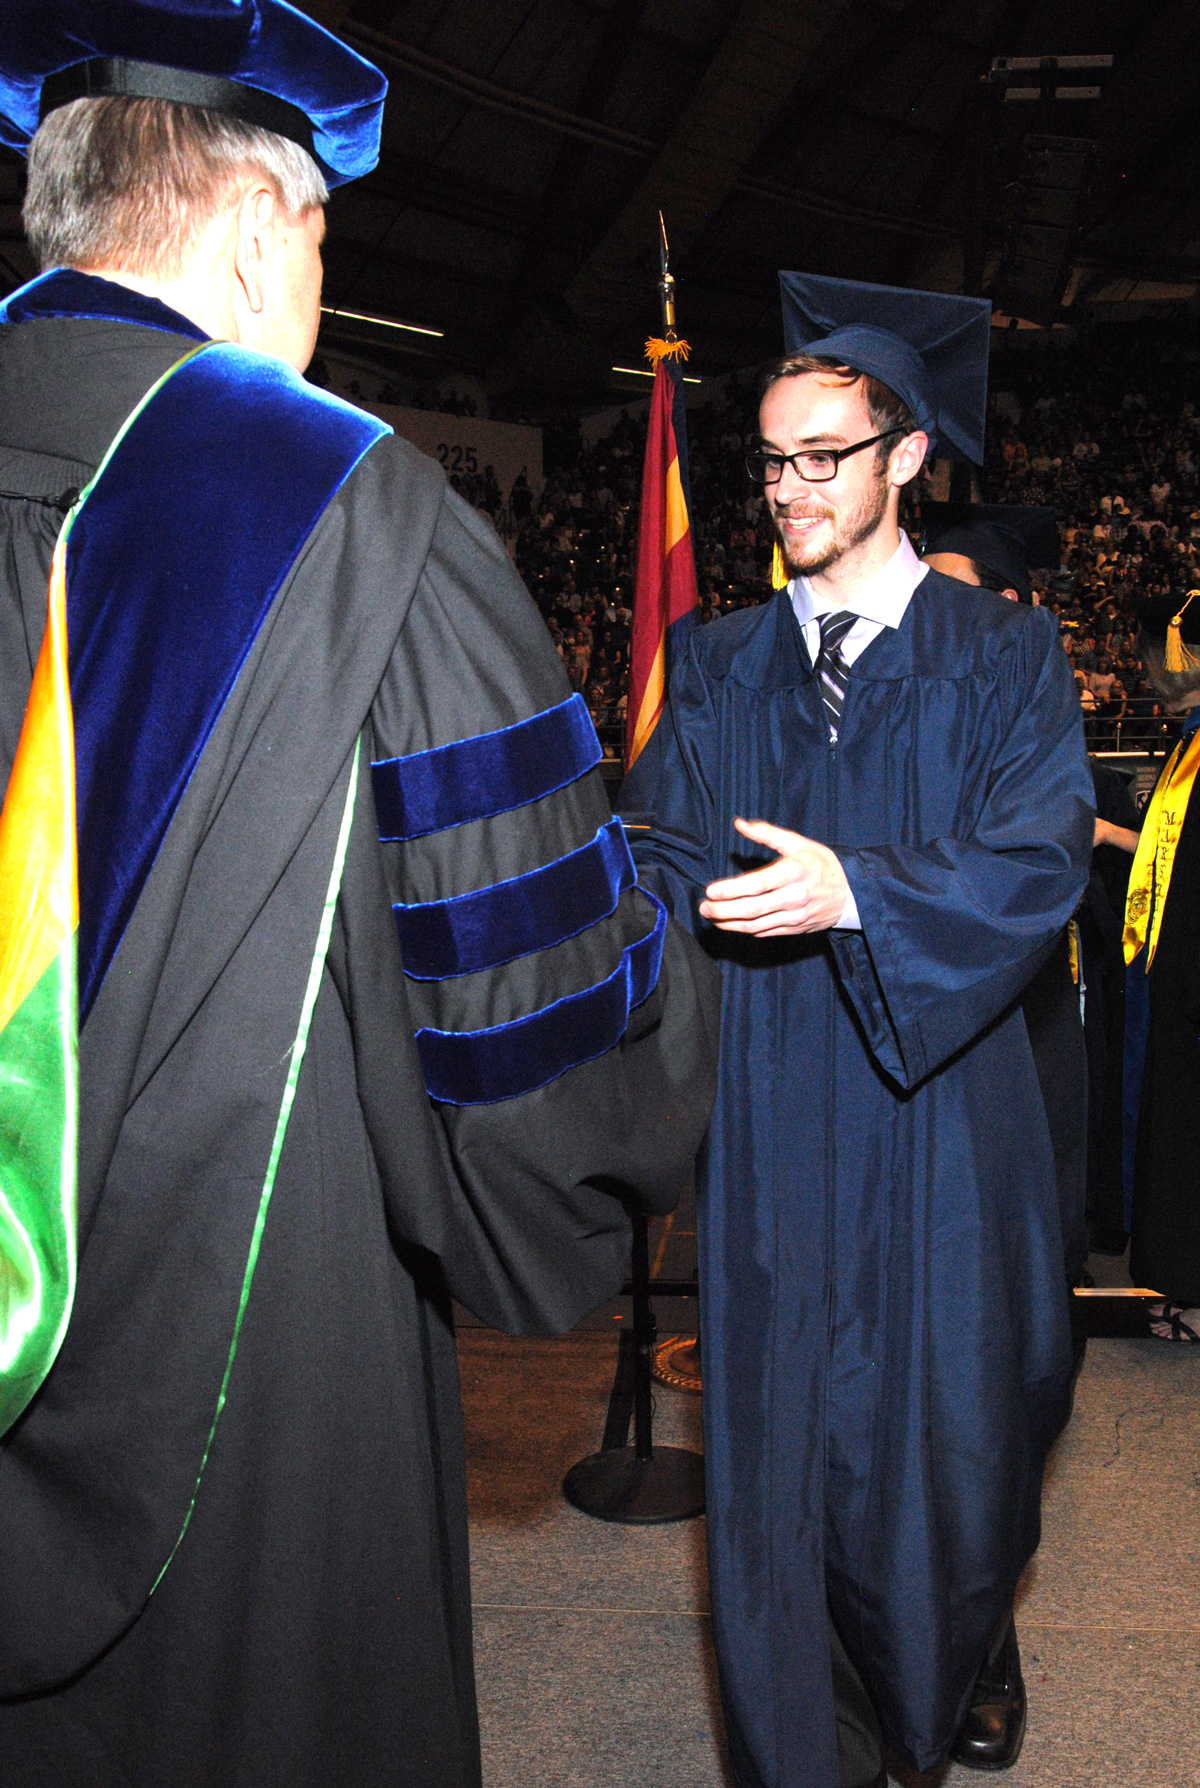 Sam's college graduation